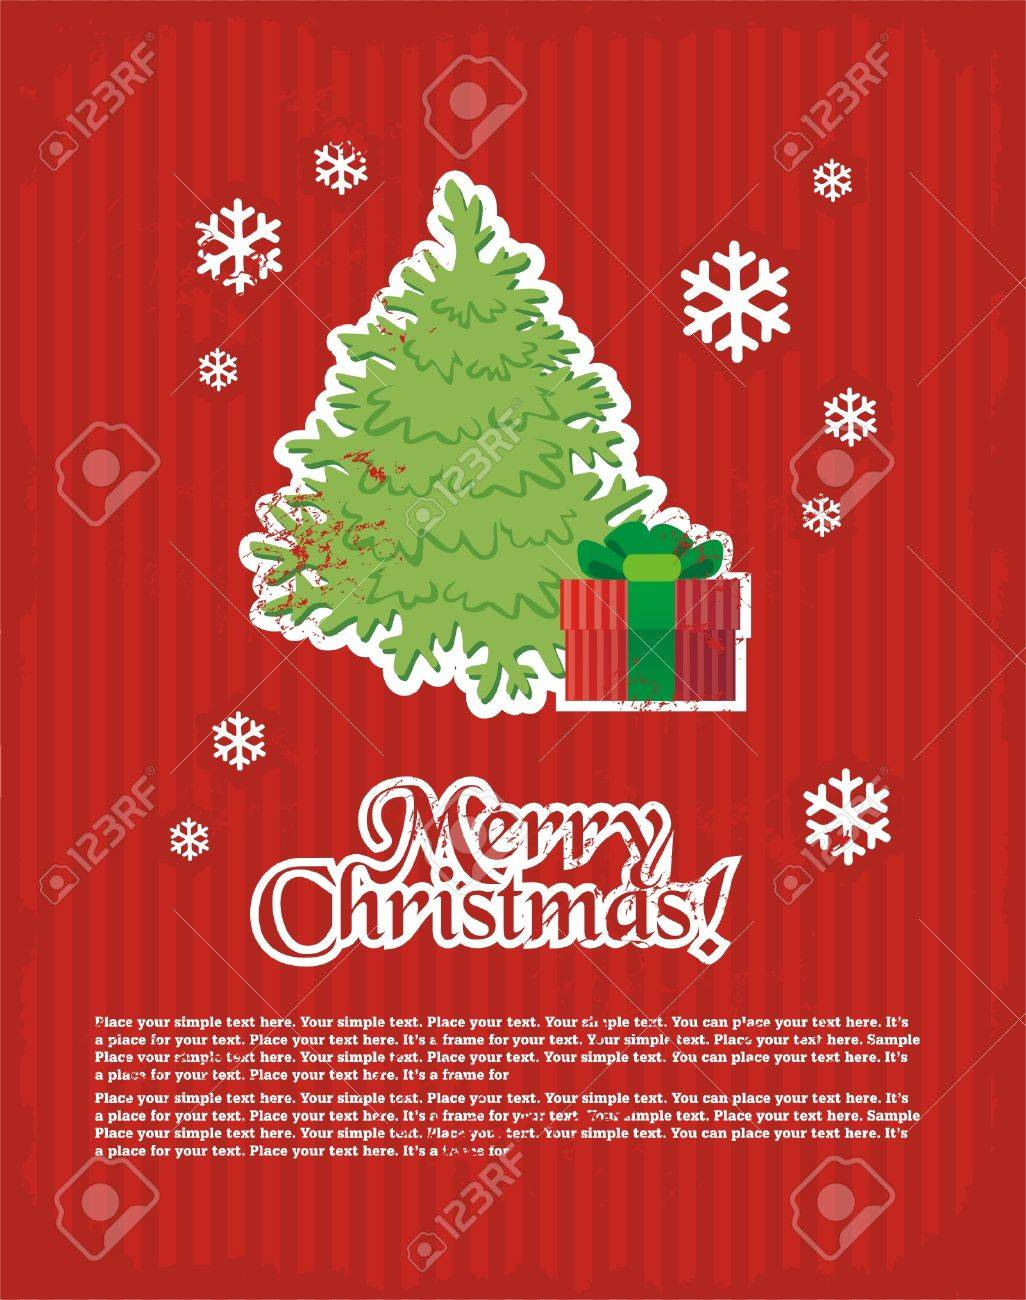 Christmas and New Year's minimal simple postcard with decorative elements and space for your text. Stock Vector - 5754944